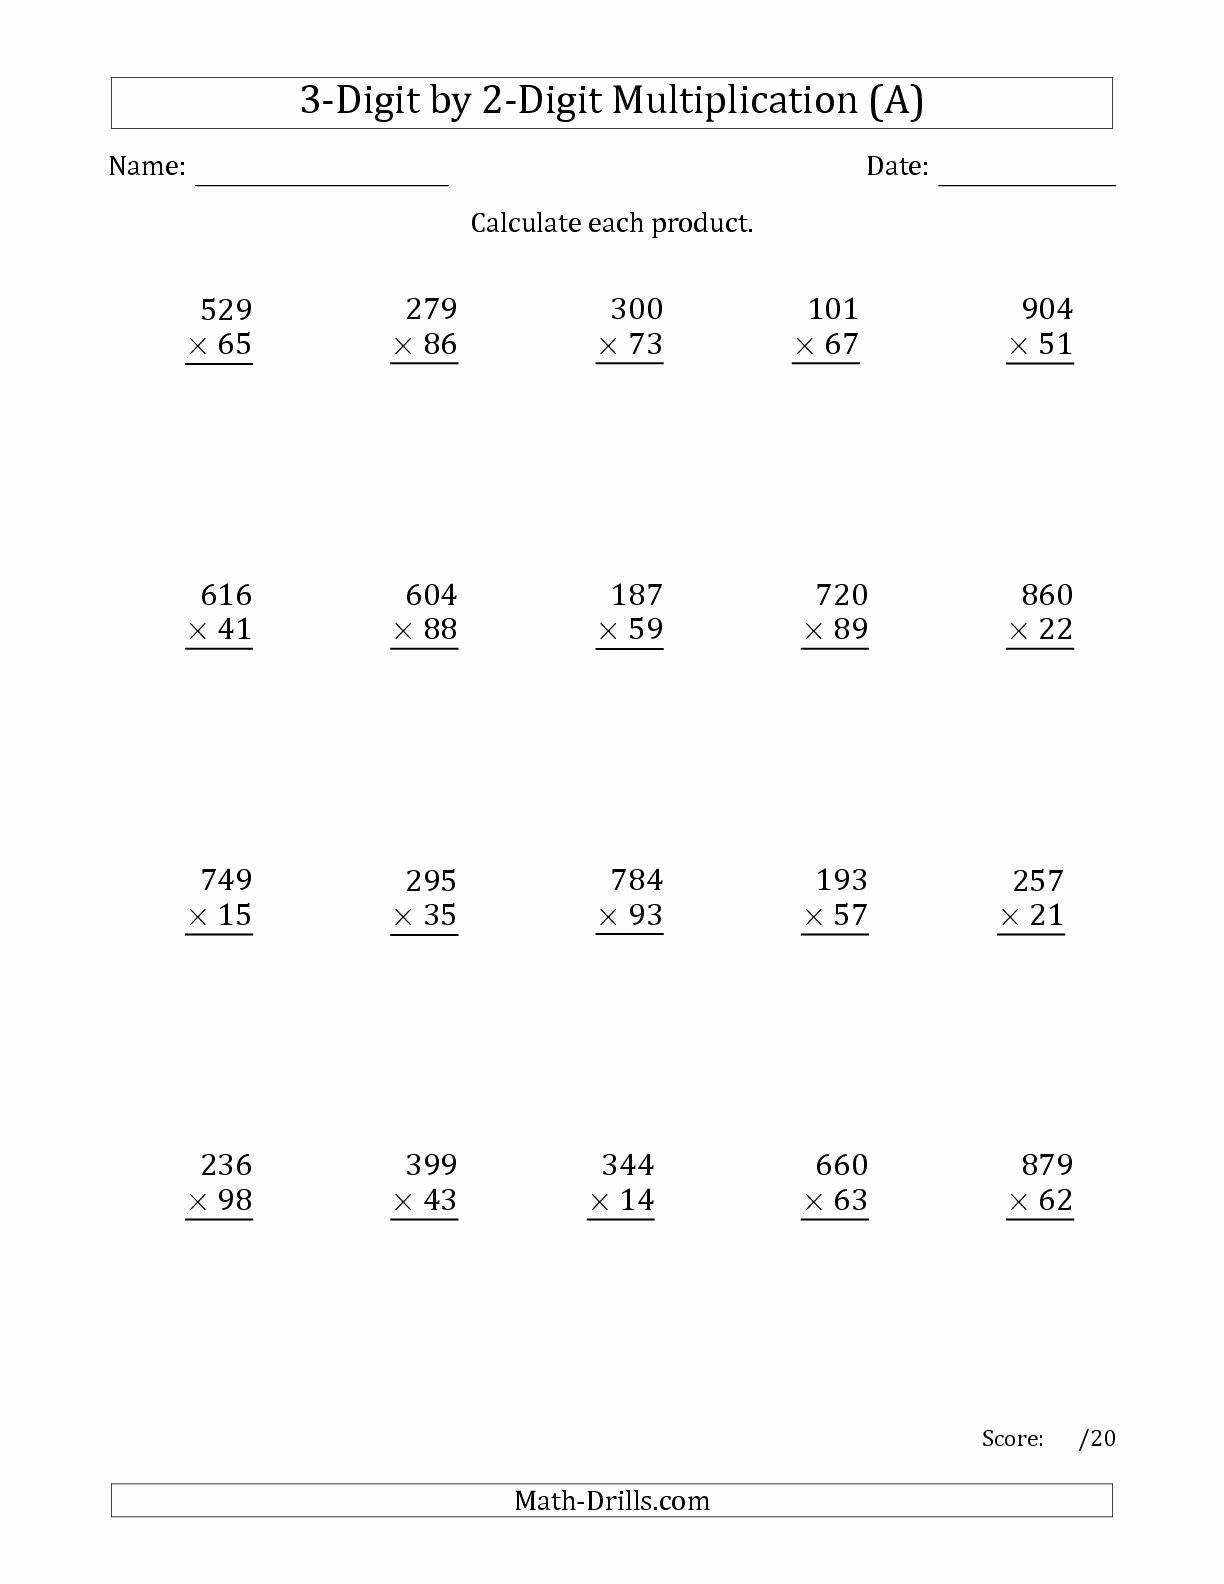 Multiplication Worksheets 2 Digit New the Multiplying 3 Digit by 2 Digit Numbers A Math